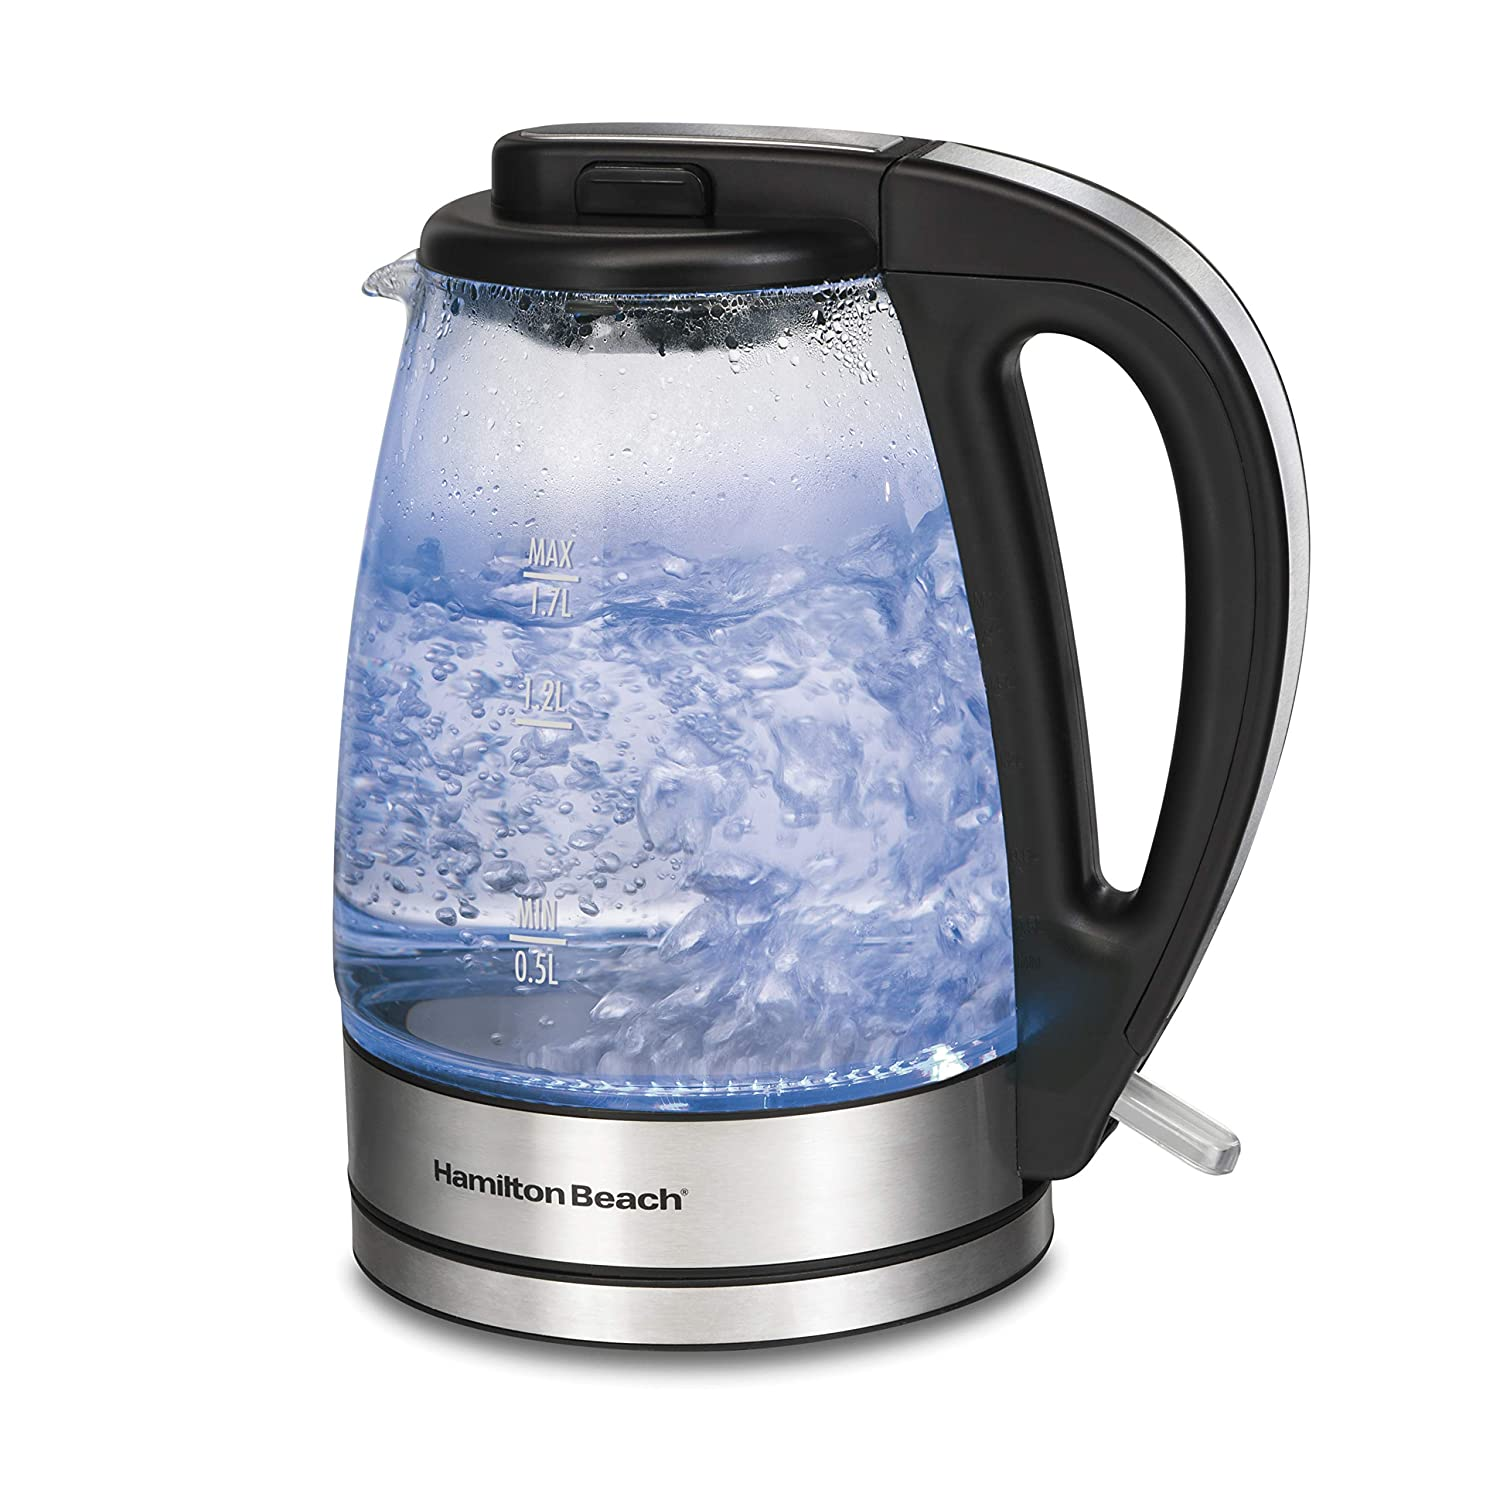 Hamilton Beach 1.7 L Glass Electric Kettle for Tea and Water, Cordless, LED Indicator, Auto-Shutoff and Boil-Dry Protection, Brushed Metal (40865),